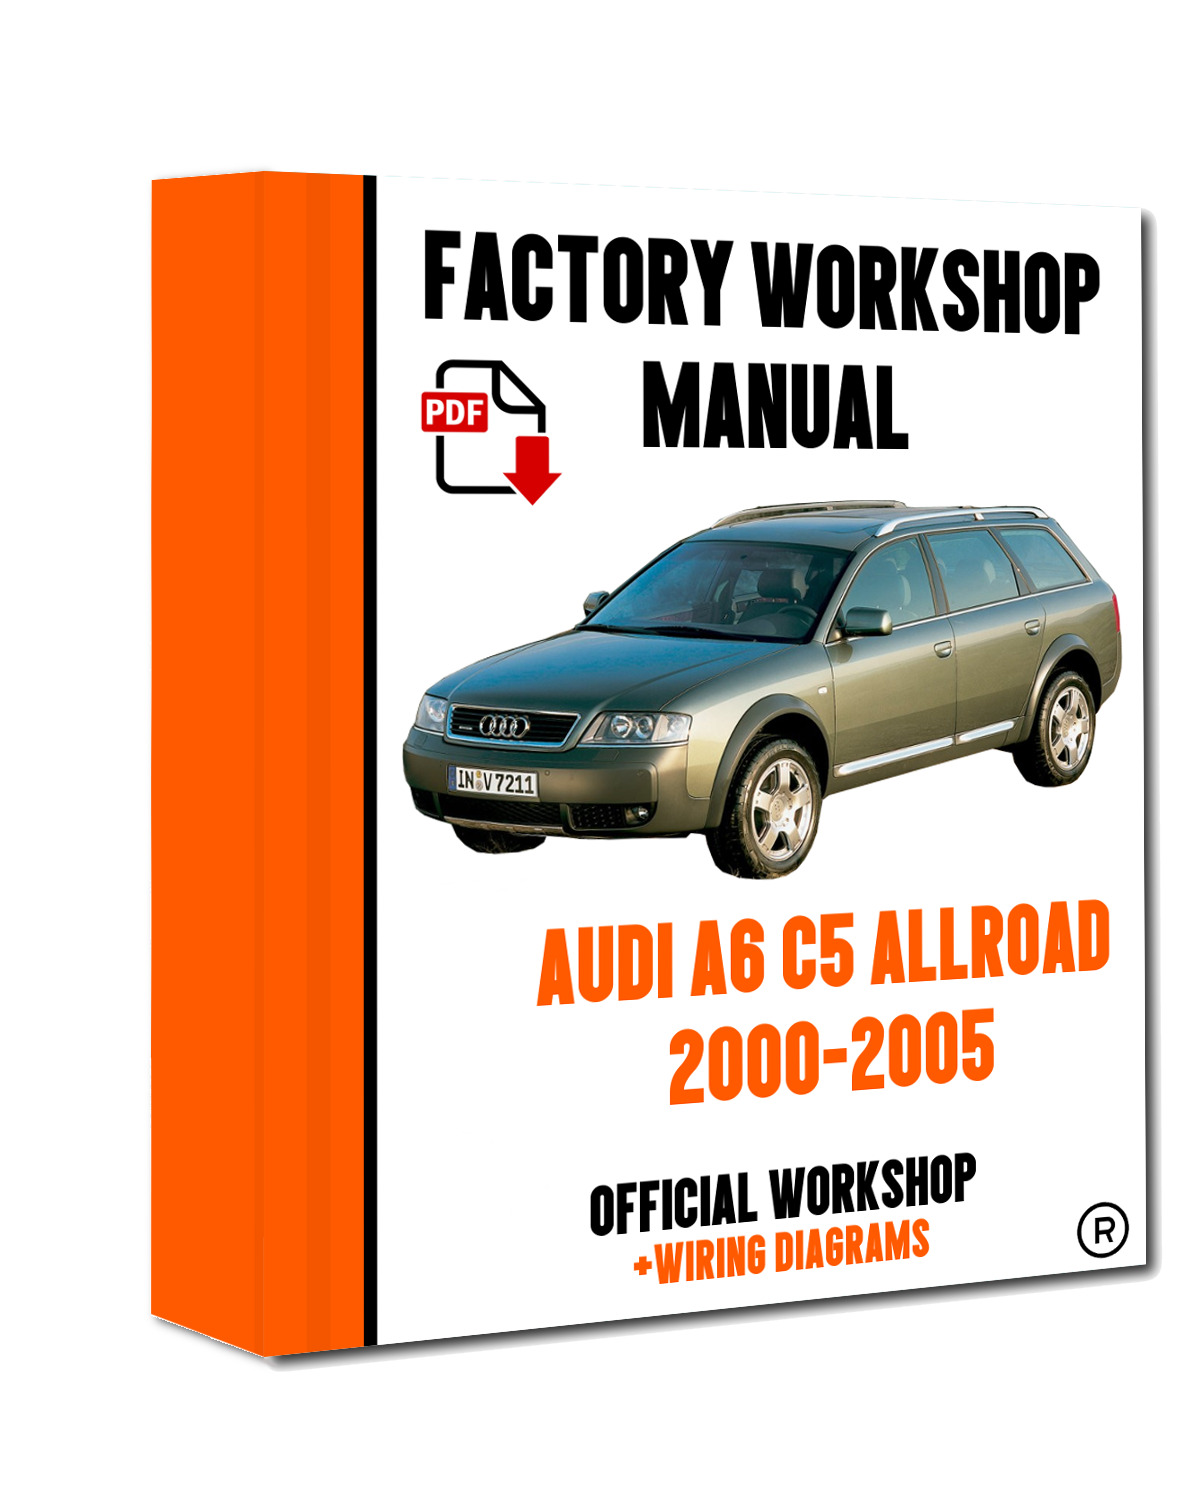 OFFICIAL WORKSHOP Manual Service Repair Audi A6 C5 Allroad 2000 - 2005 1 of  6FREE Shipping ...